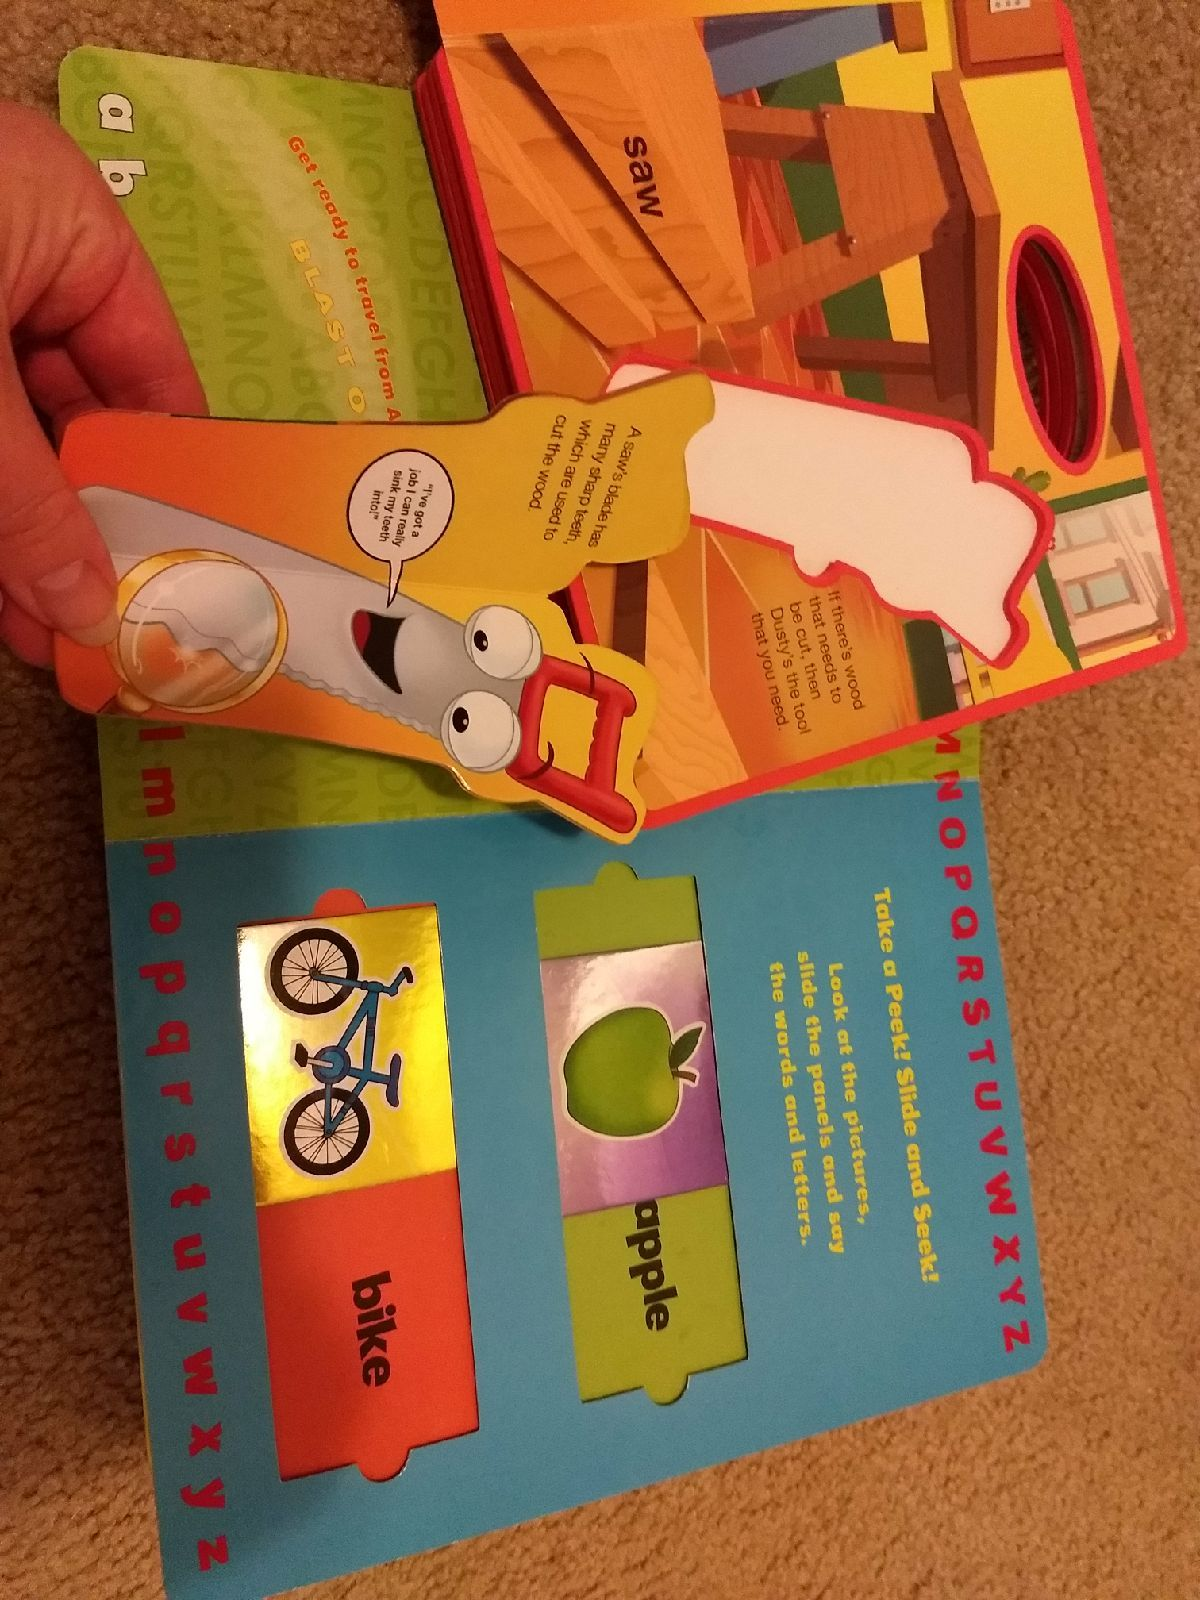 7 learning books for baby Mercari BUY & SELL THINGS YOU LOVE